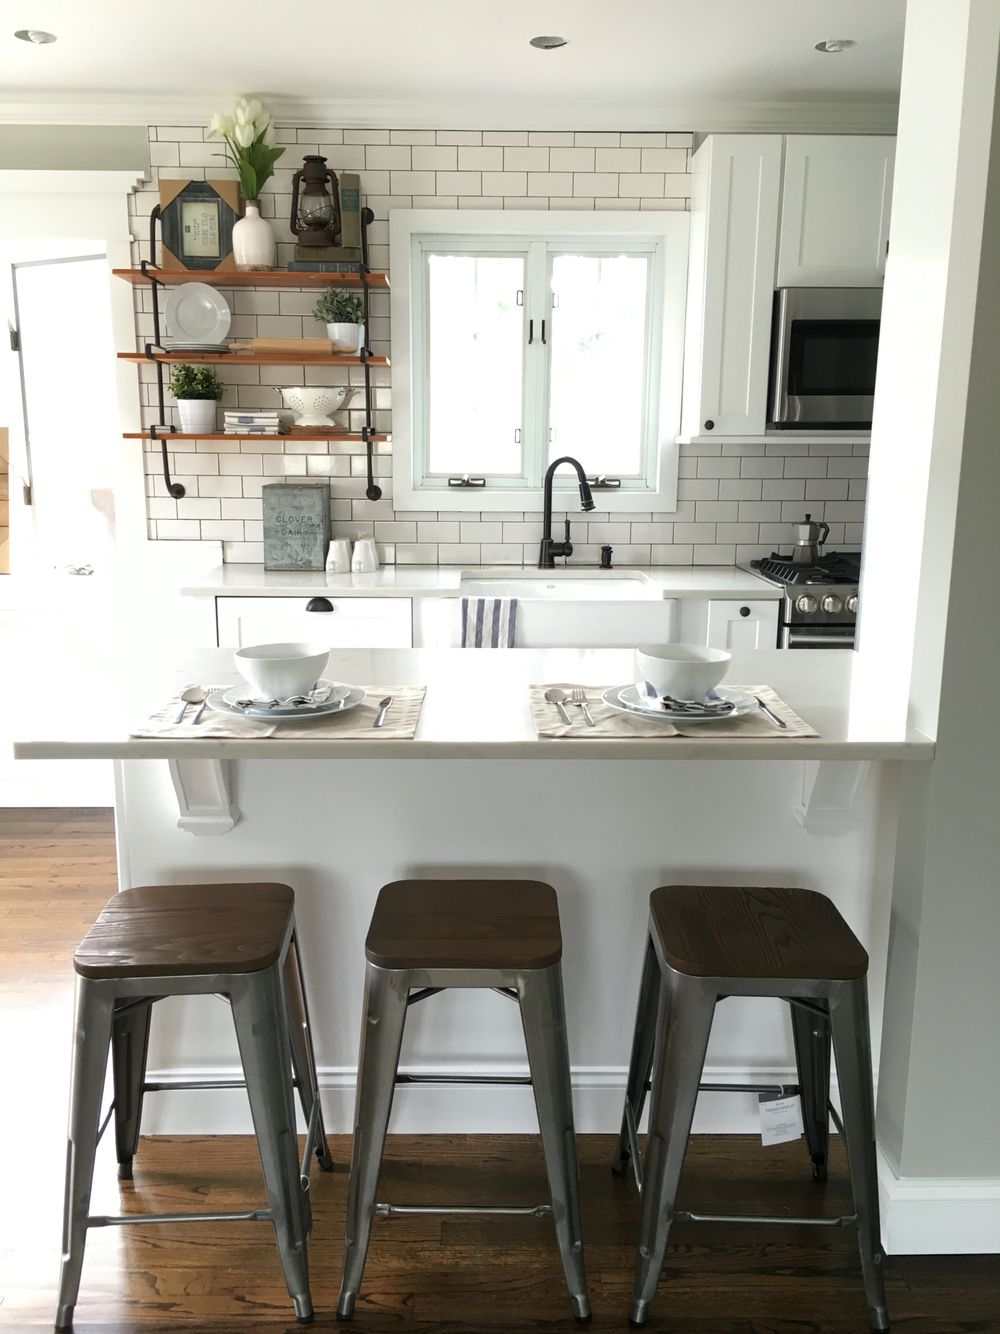 Modern farmhouse decor: subway tile, dark grout, Quartz, peninsula ...